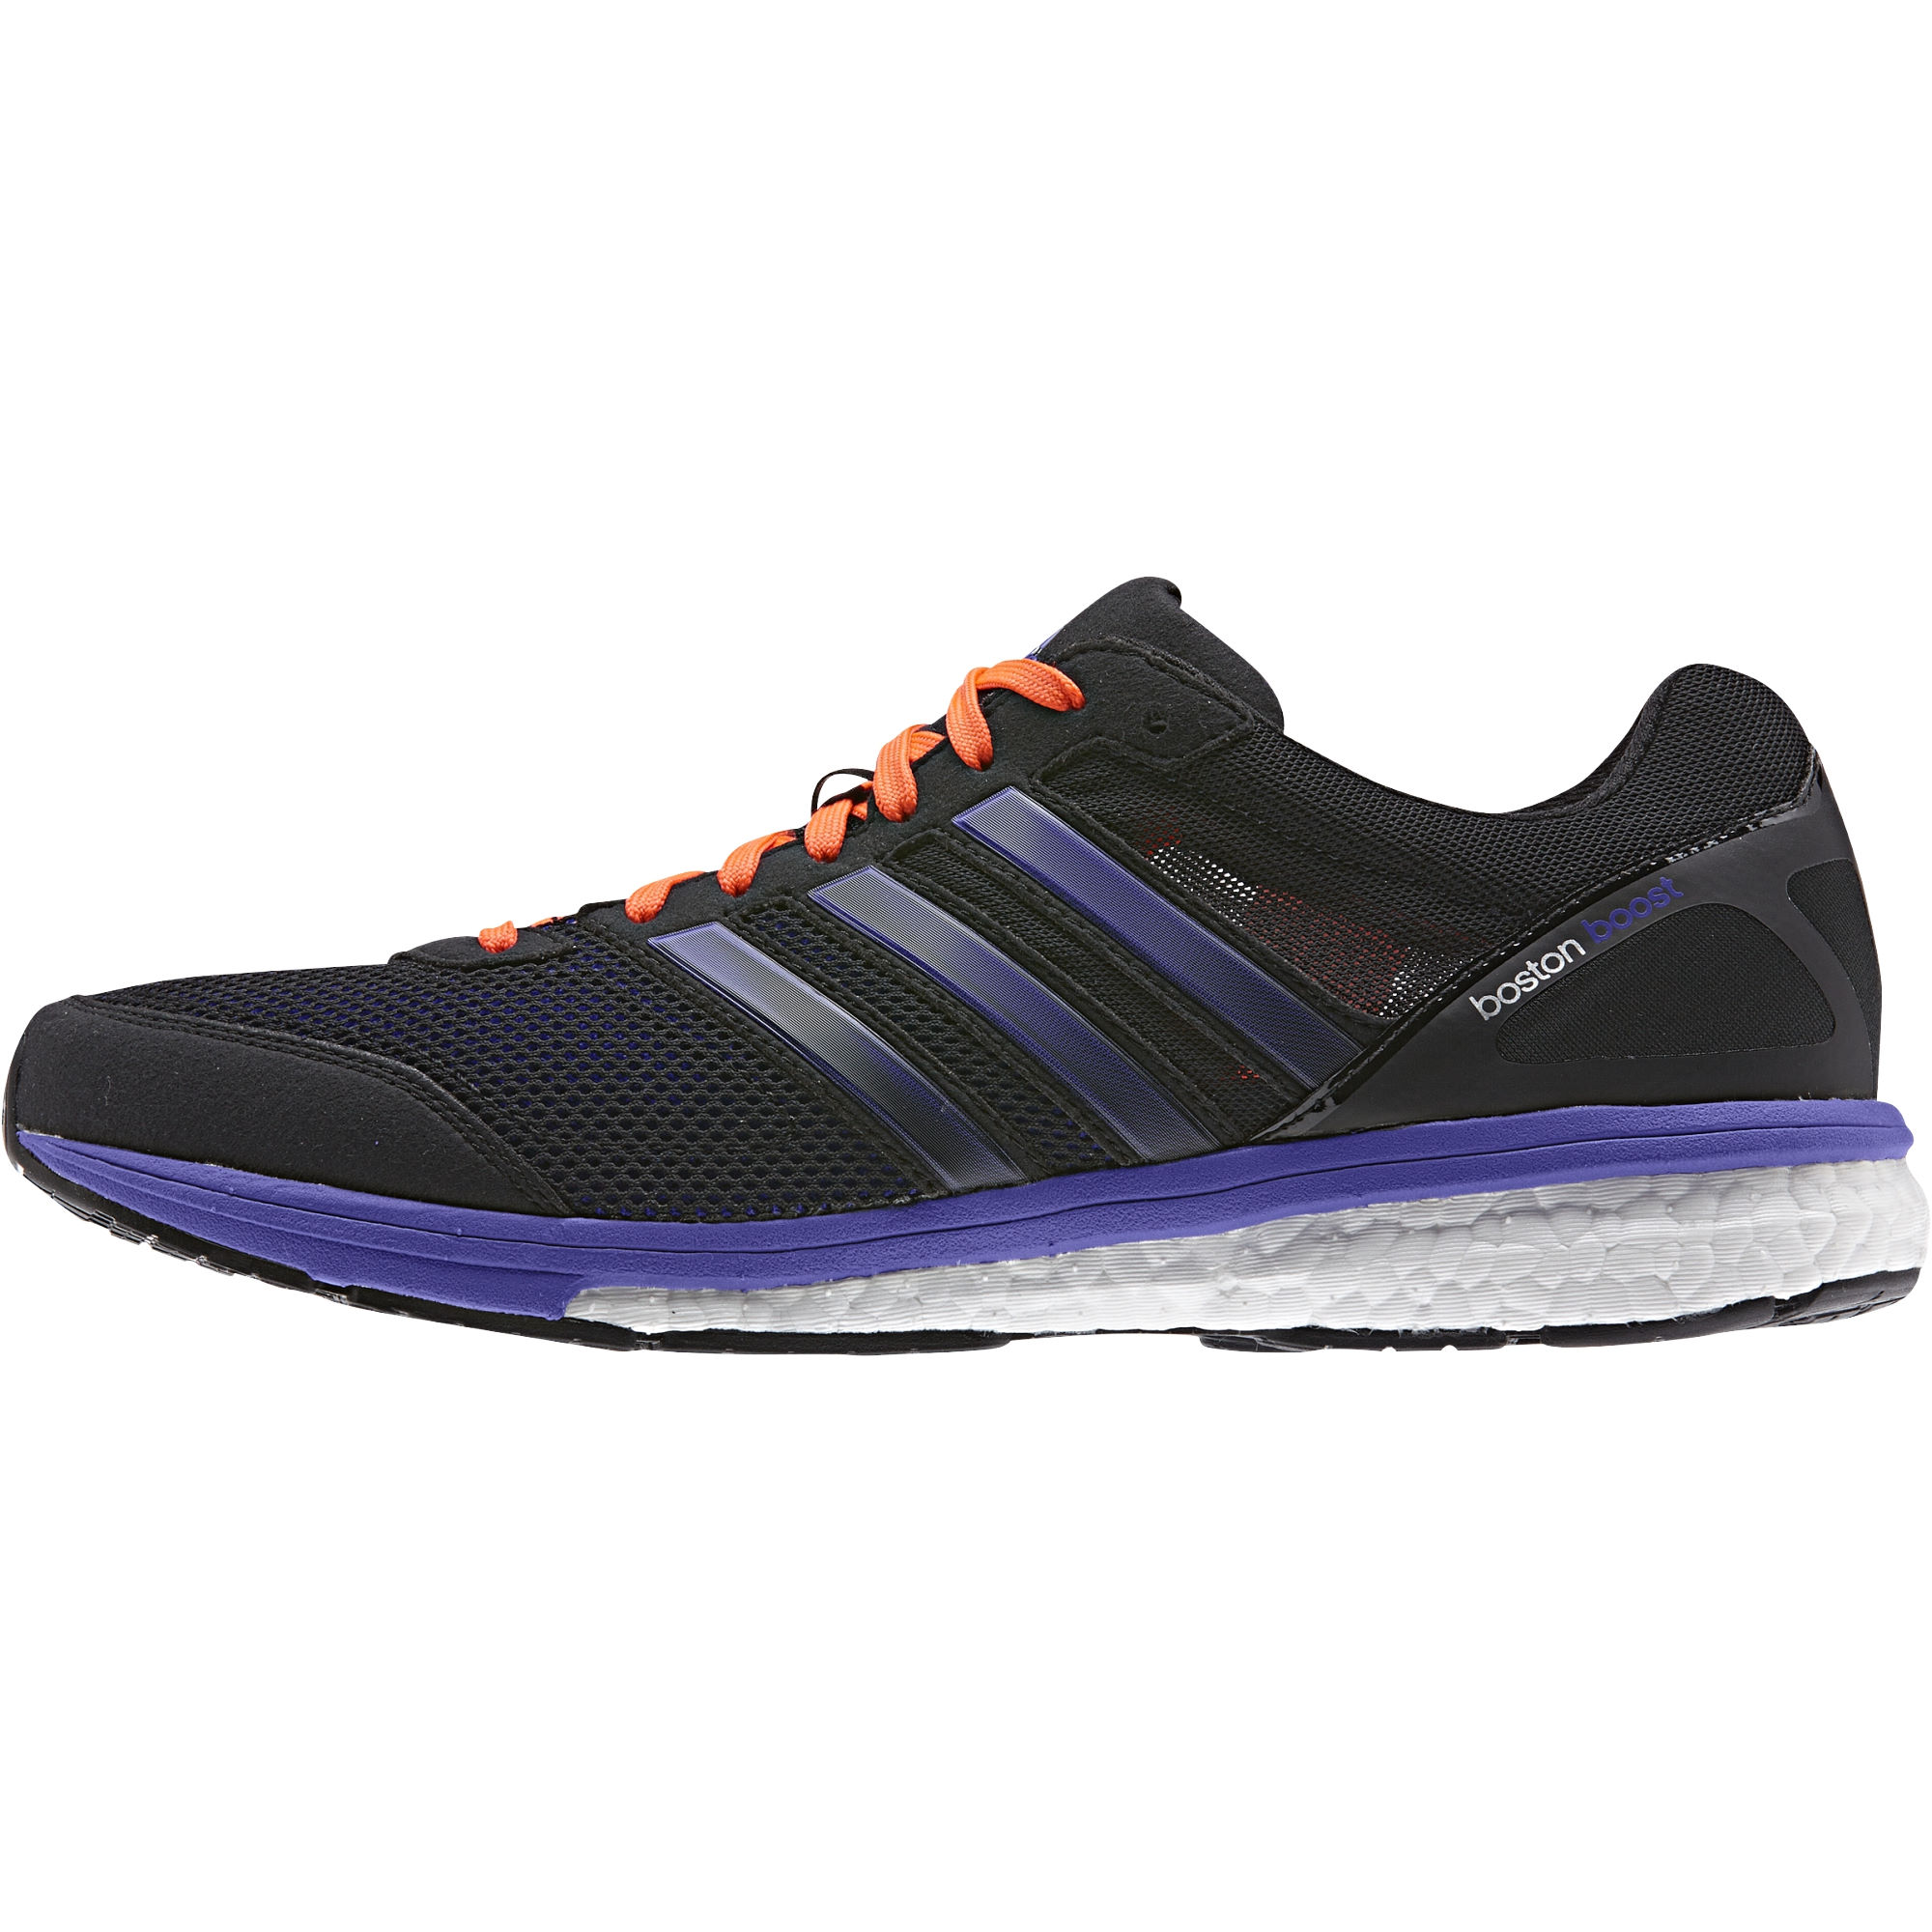 wiggle adidas adizero boston boost 5 shoes ss15 racing running shoes. Black Bedroom Furniture Sets. Home Design Ideas